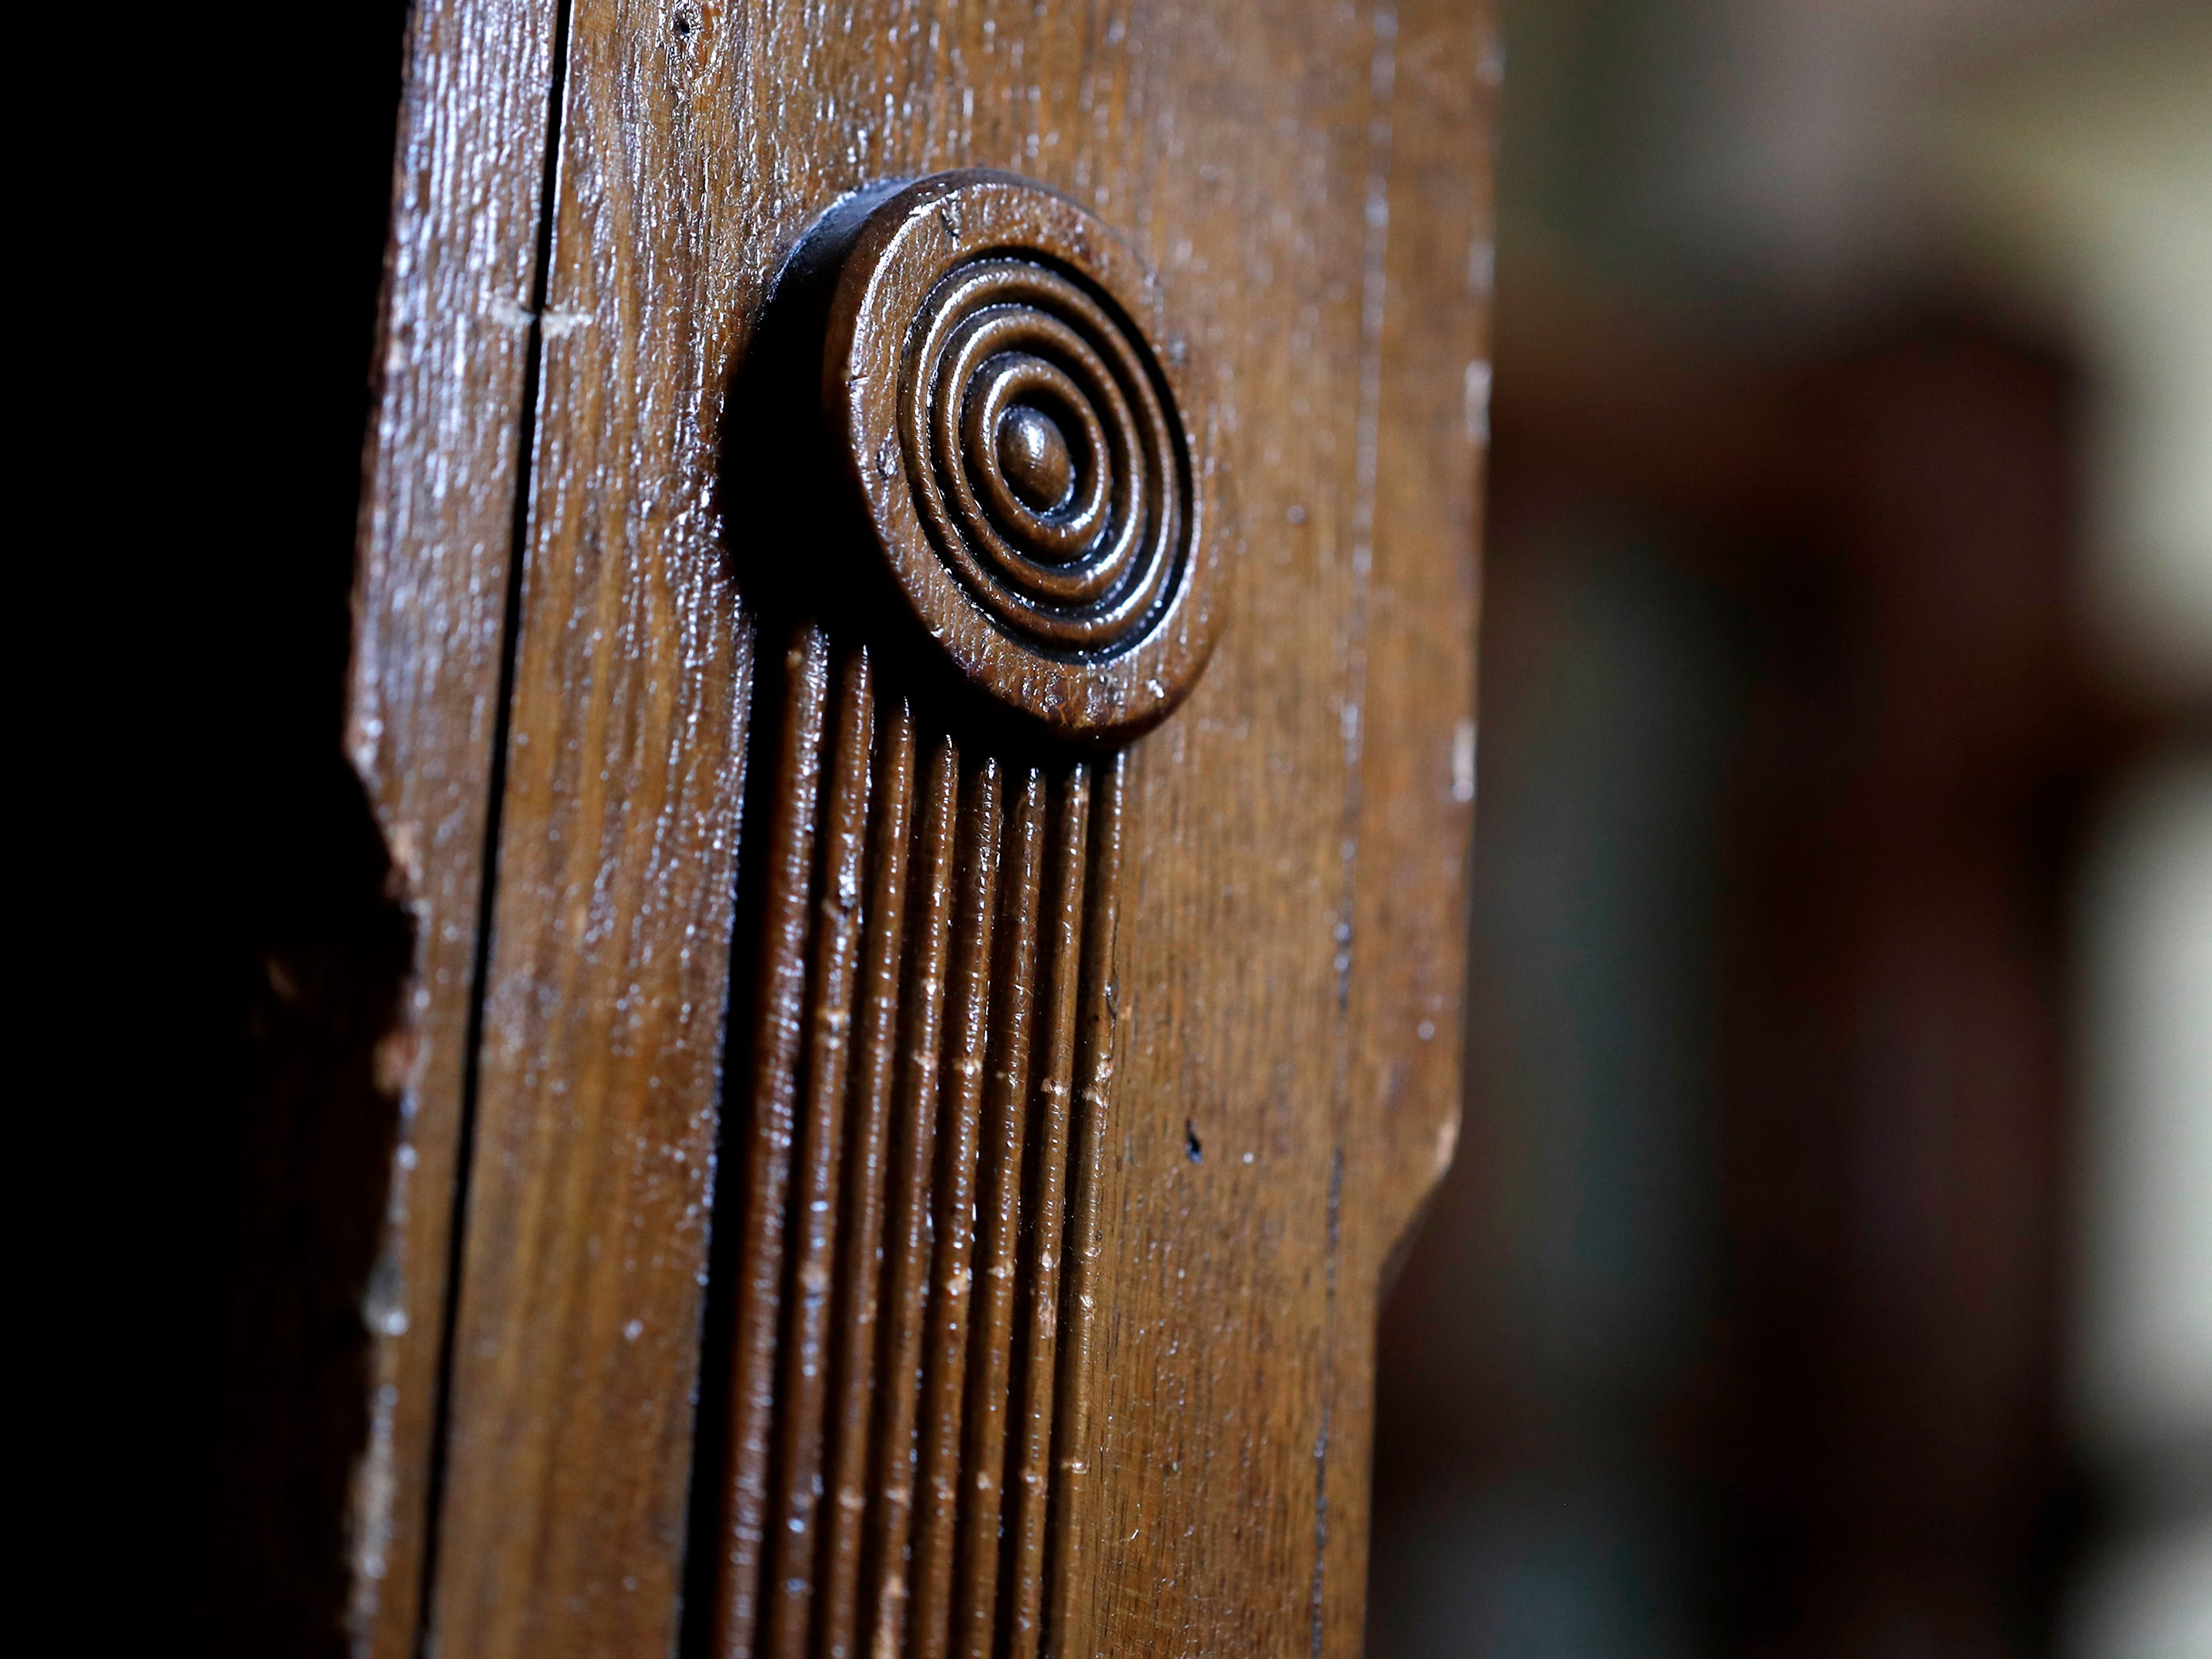 A woodworking detail on the grand staircase original to the building that houses Gabriel Furniture which was built in 1888 Thursday, April 18, 2019, in Appleton, Wis. Danny Damiani/USA TODAY NETWORK-Wisconsin